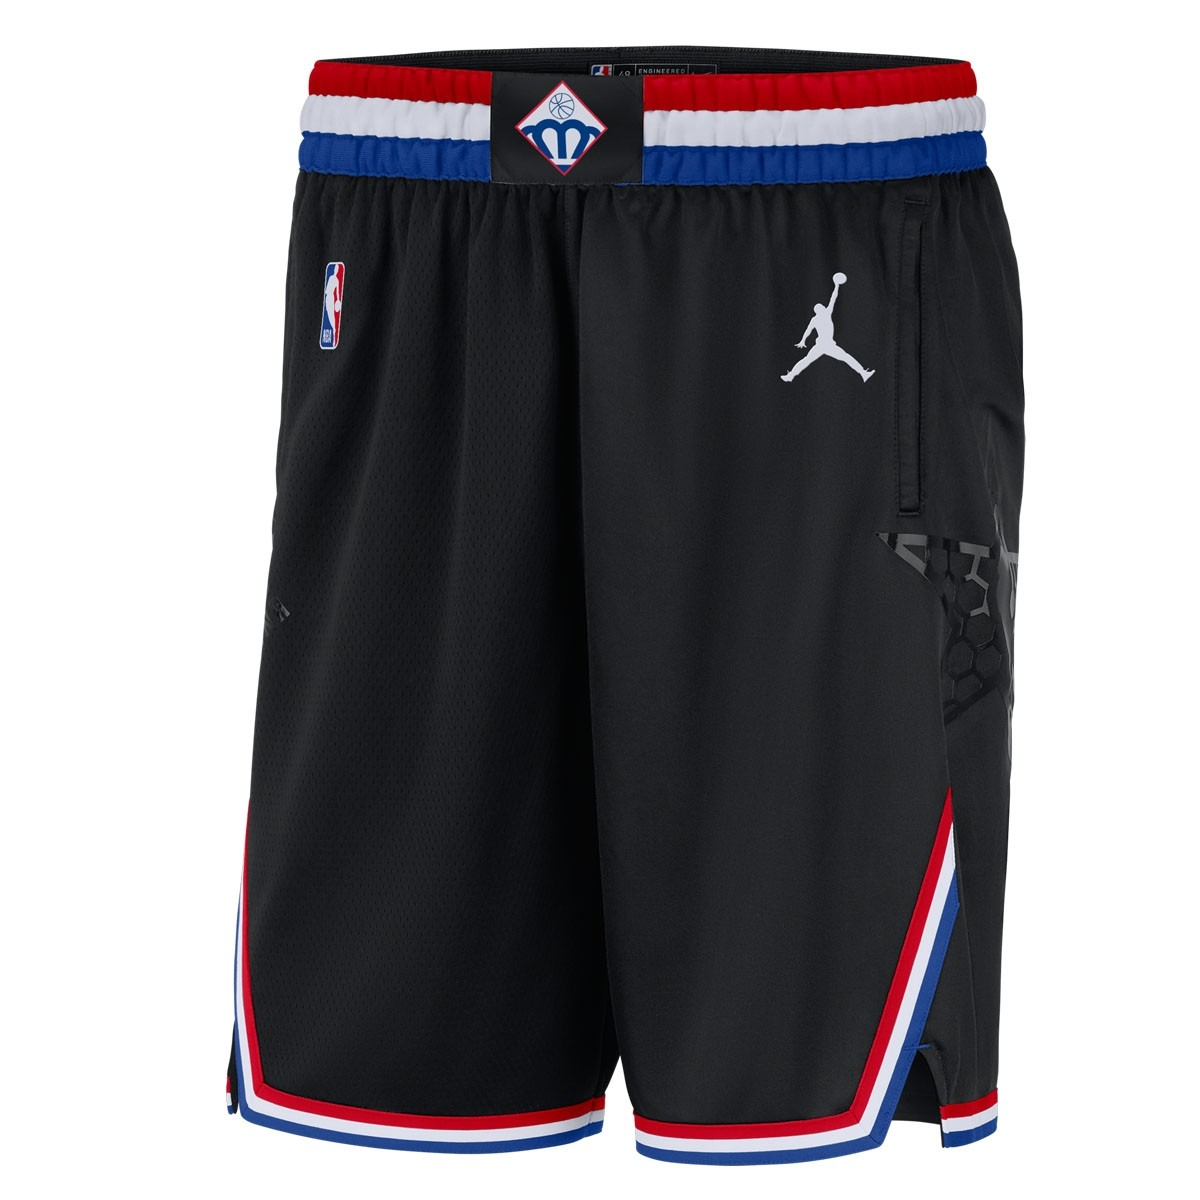 Jordan Swigman Short All-Star edition 'Black'